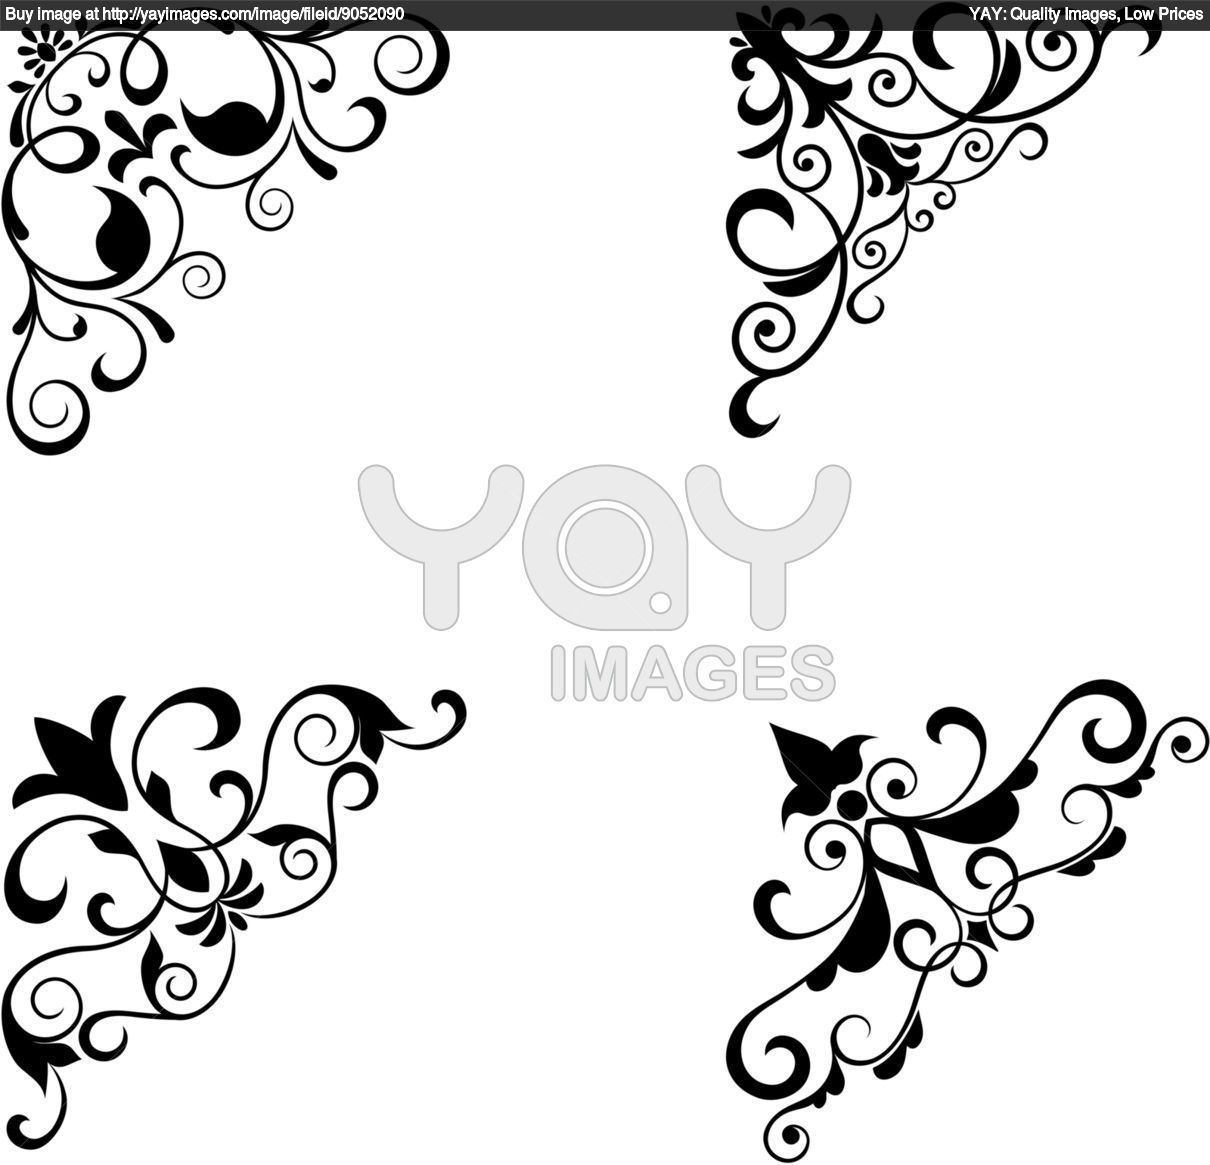 Tattoos arabesque tattoos arabeske tattoos arabesk tattoos - Image Detail For Pin Flowers Border Vector Free Download Flower Patterns Tattoo Picture